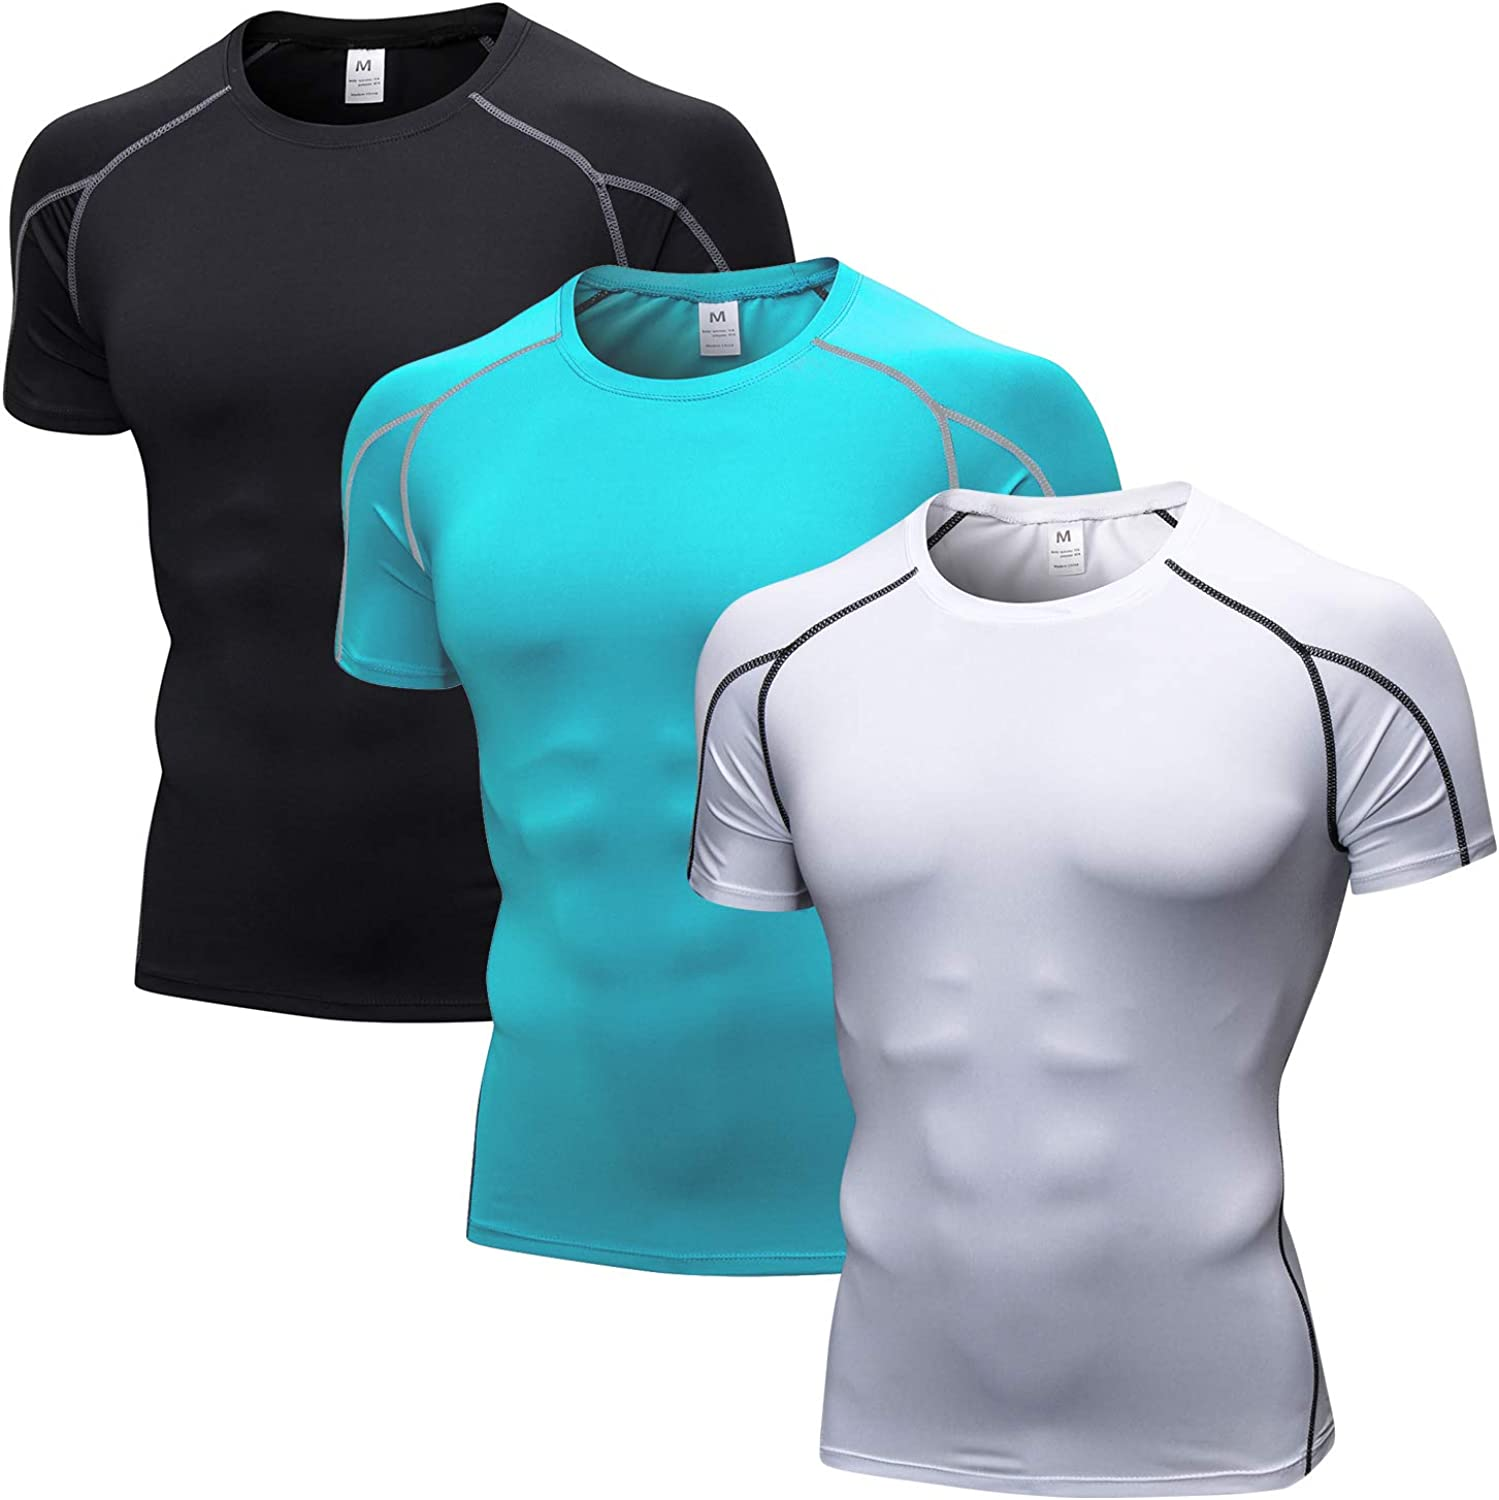 HUAKANG 3 Pack Compression Shirt for Men Dry Fit Mens Underwear Workout Shirt Cool Dry fit Shirts Men